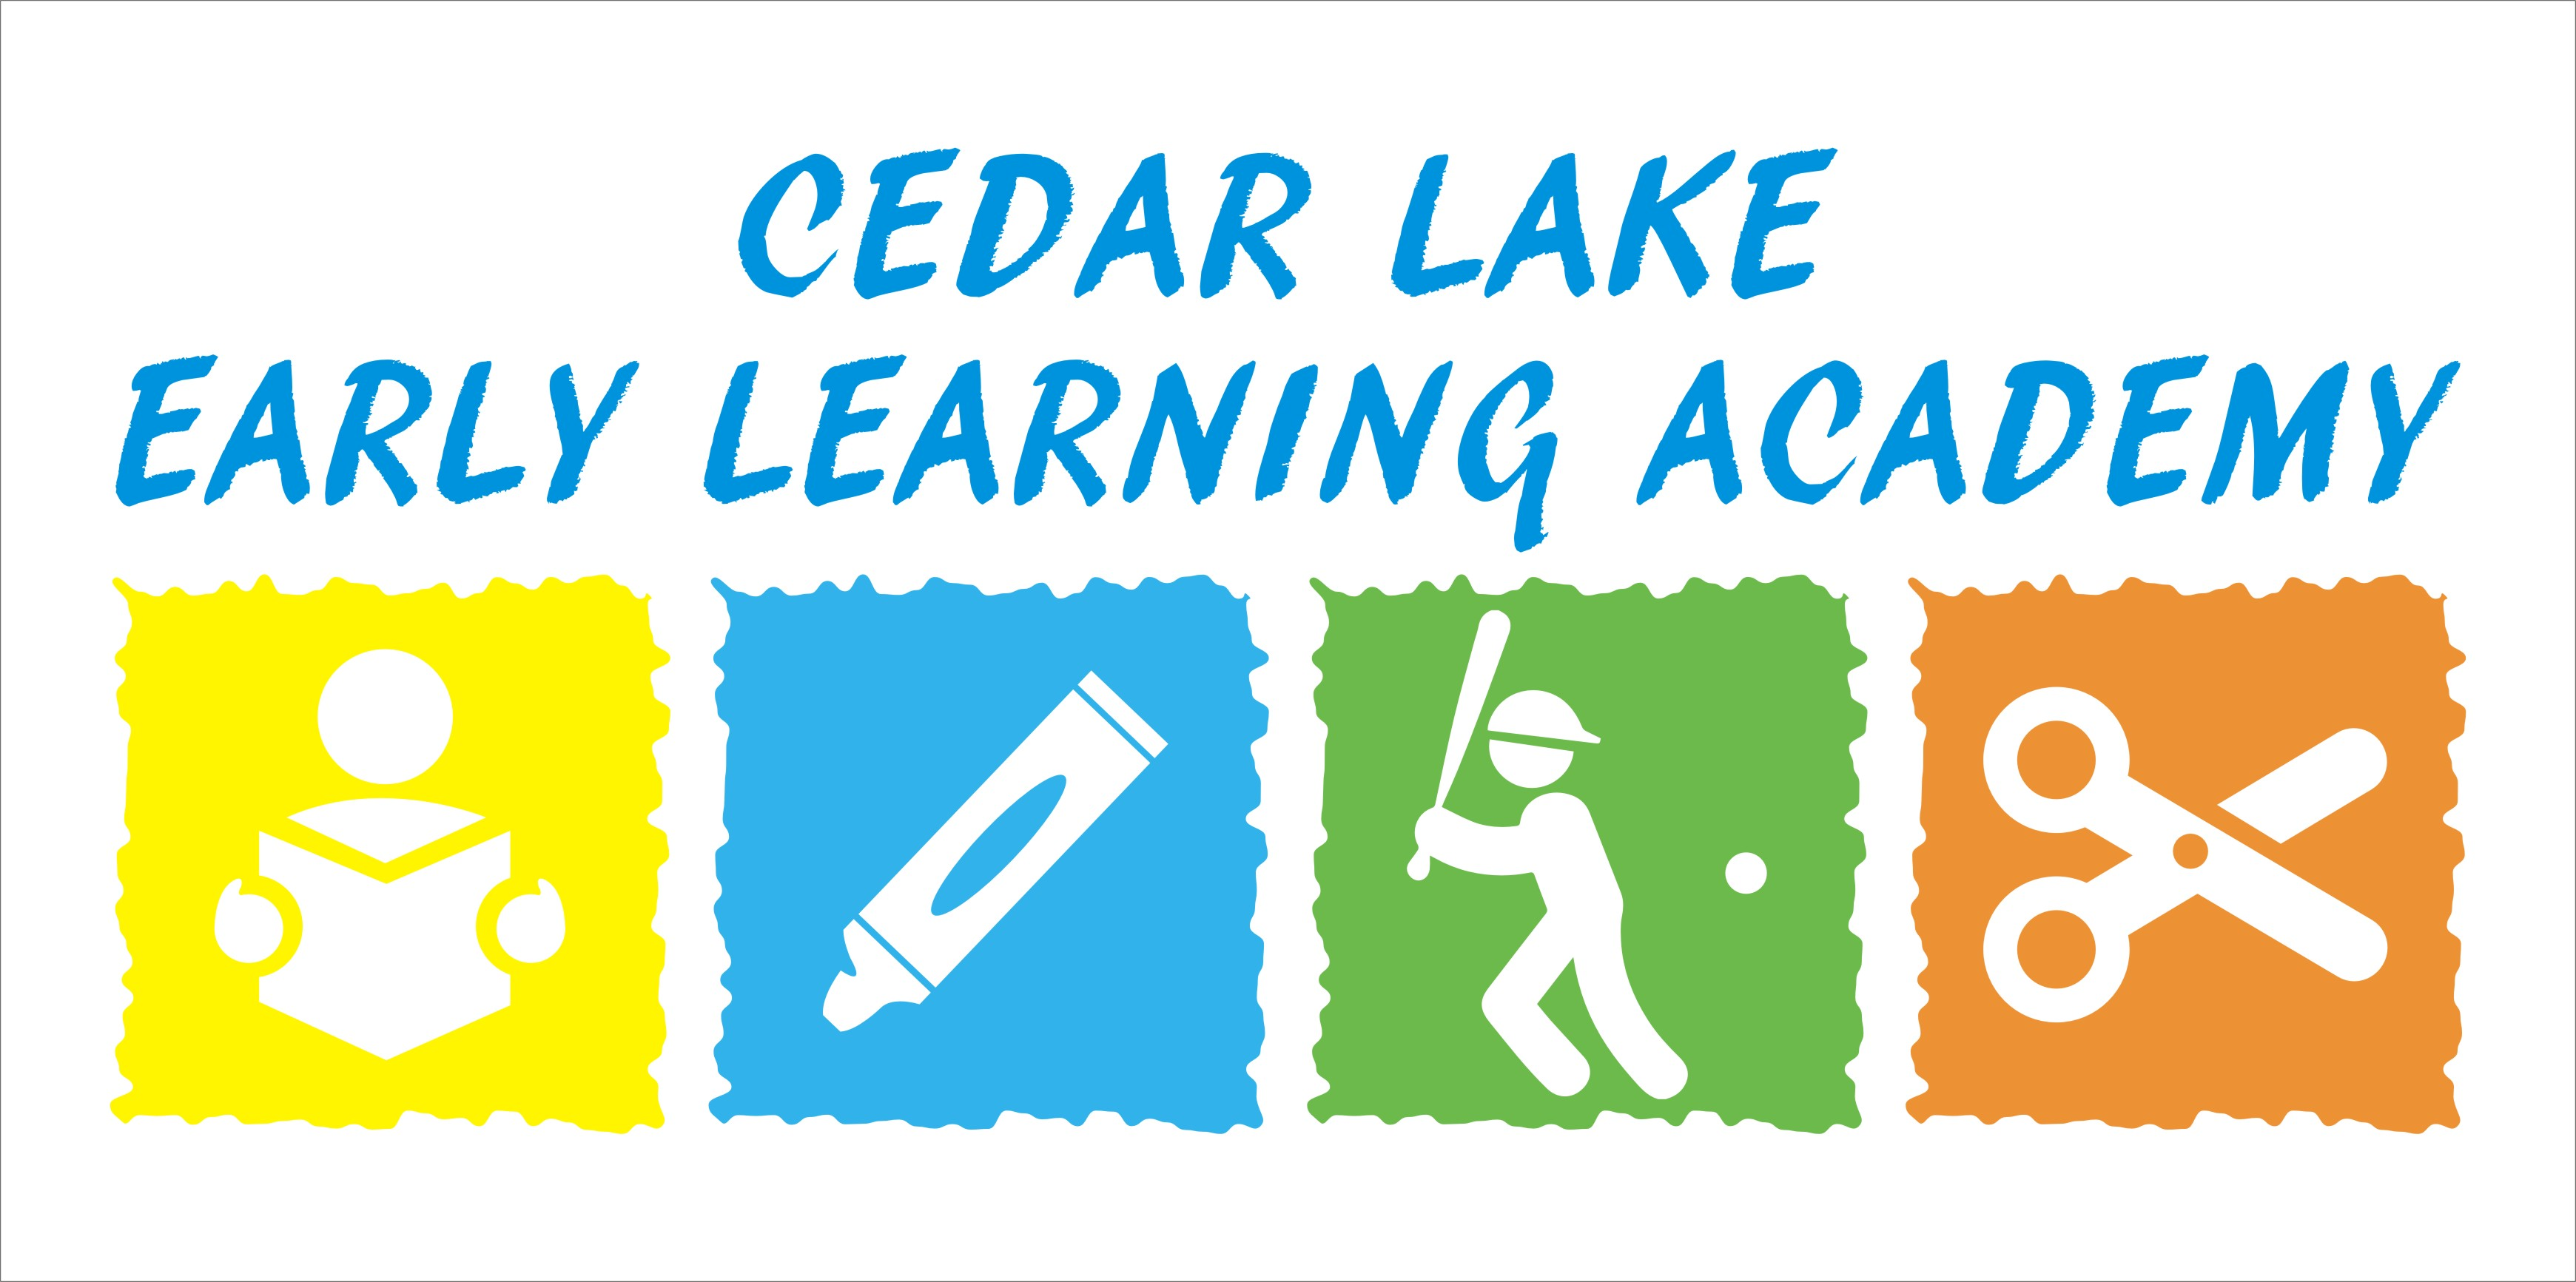 Indiana lake county griffith - Cedar Lake Early Learning Academy